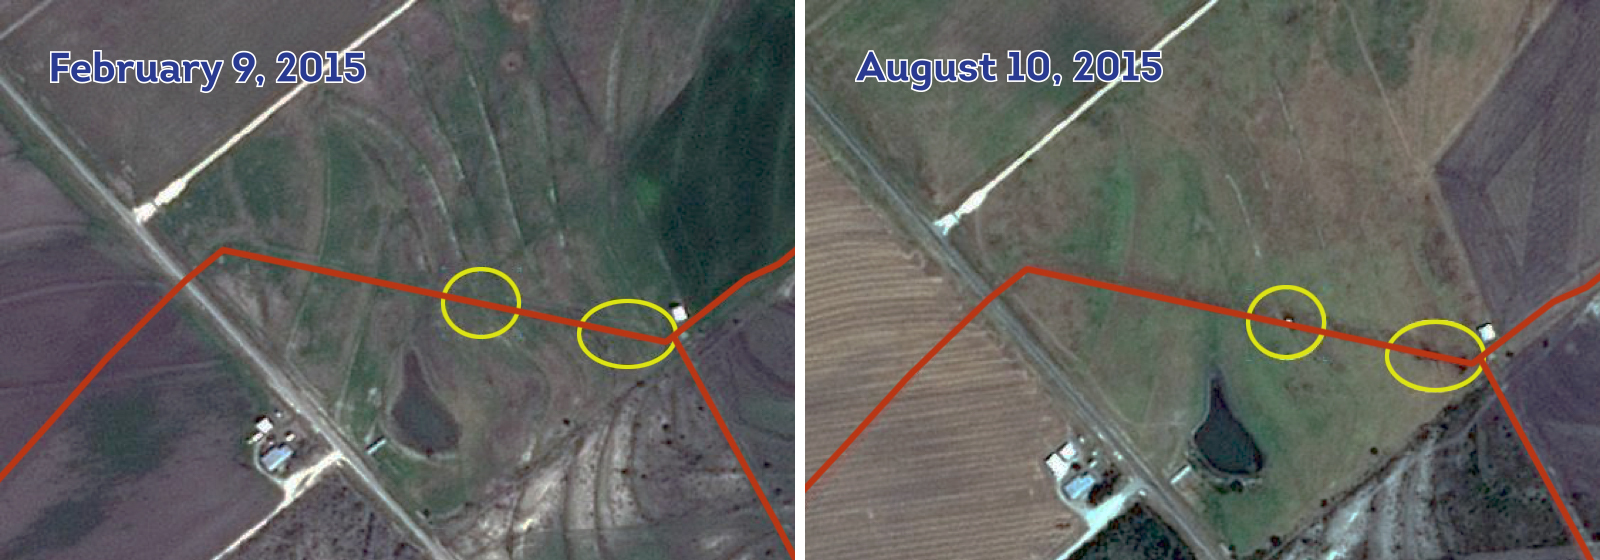 Satelytics applied its techniques to both sets of data and established that there were no leaks in February, but the leaks are clearly visible from satellite imagery captured in August.